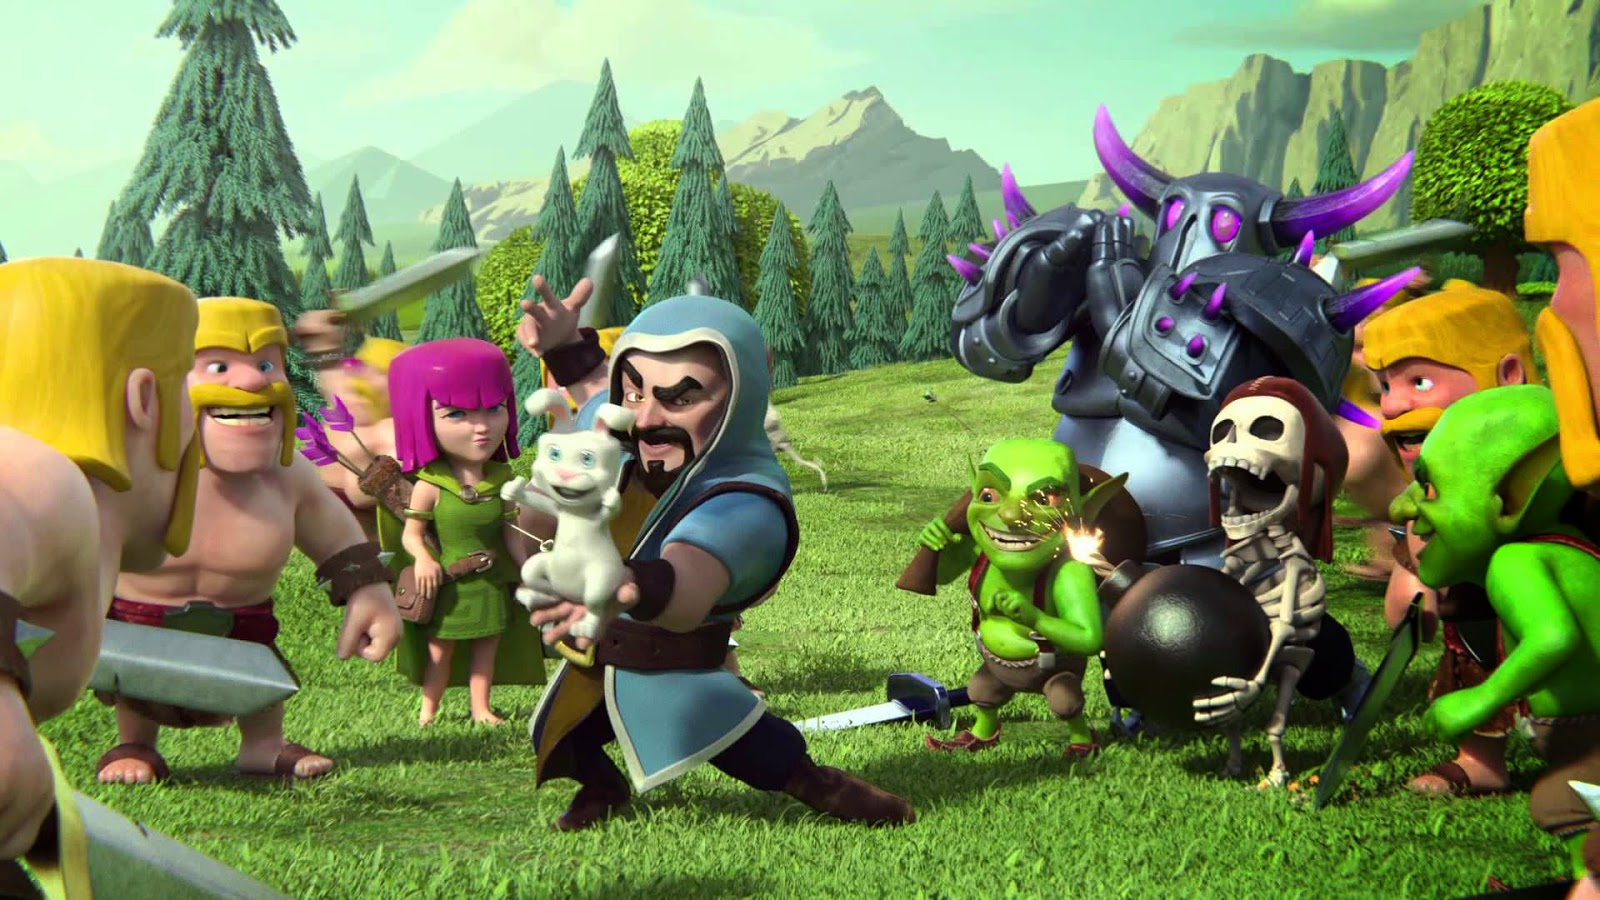 Explore Wallpaper 40 Best Clash Of Clans Game Hd Wallpapers